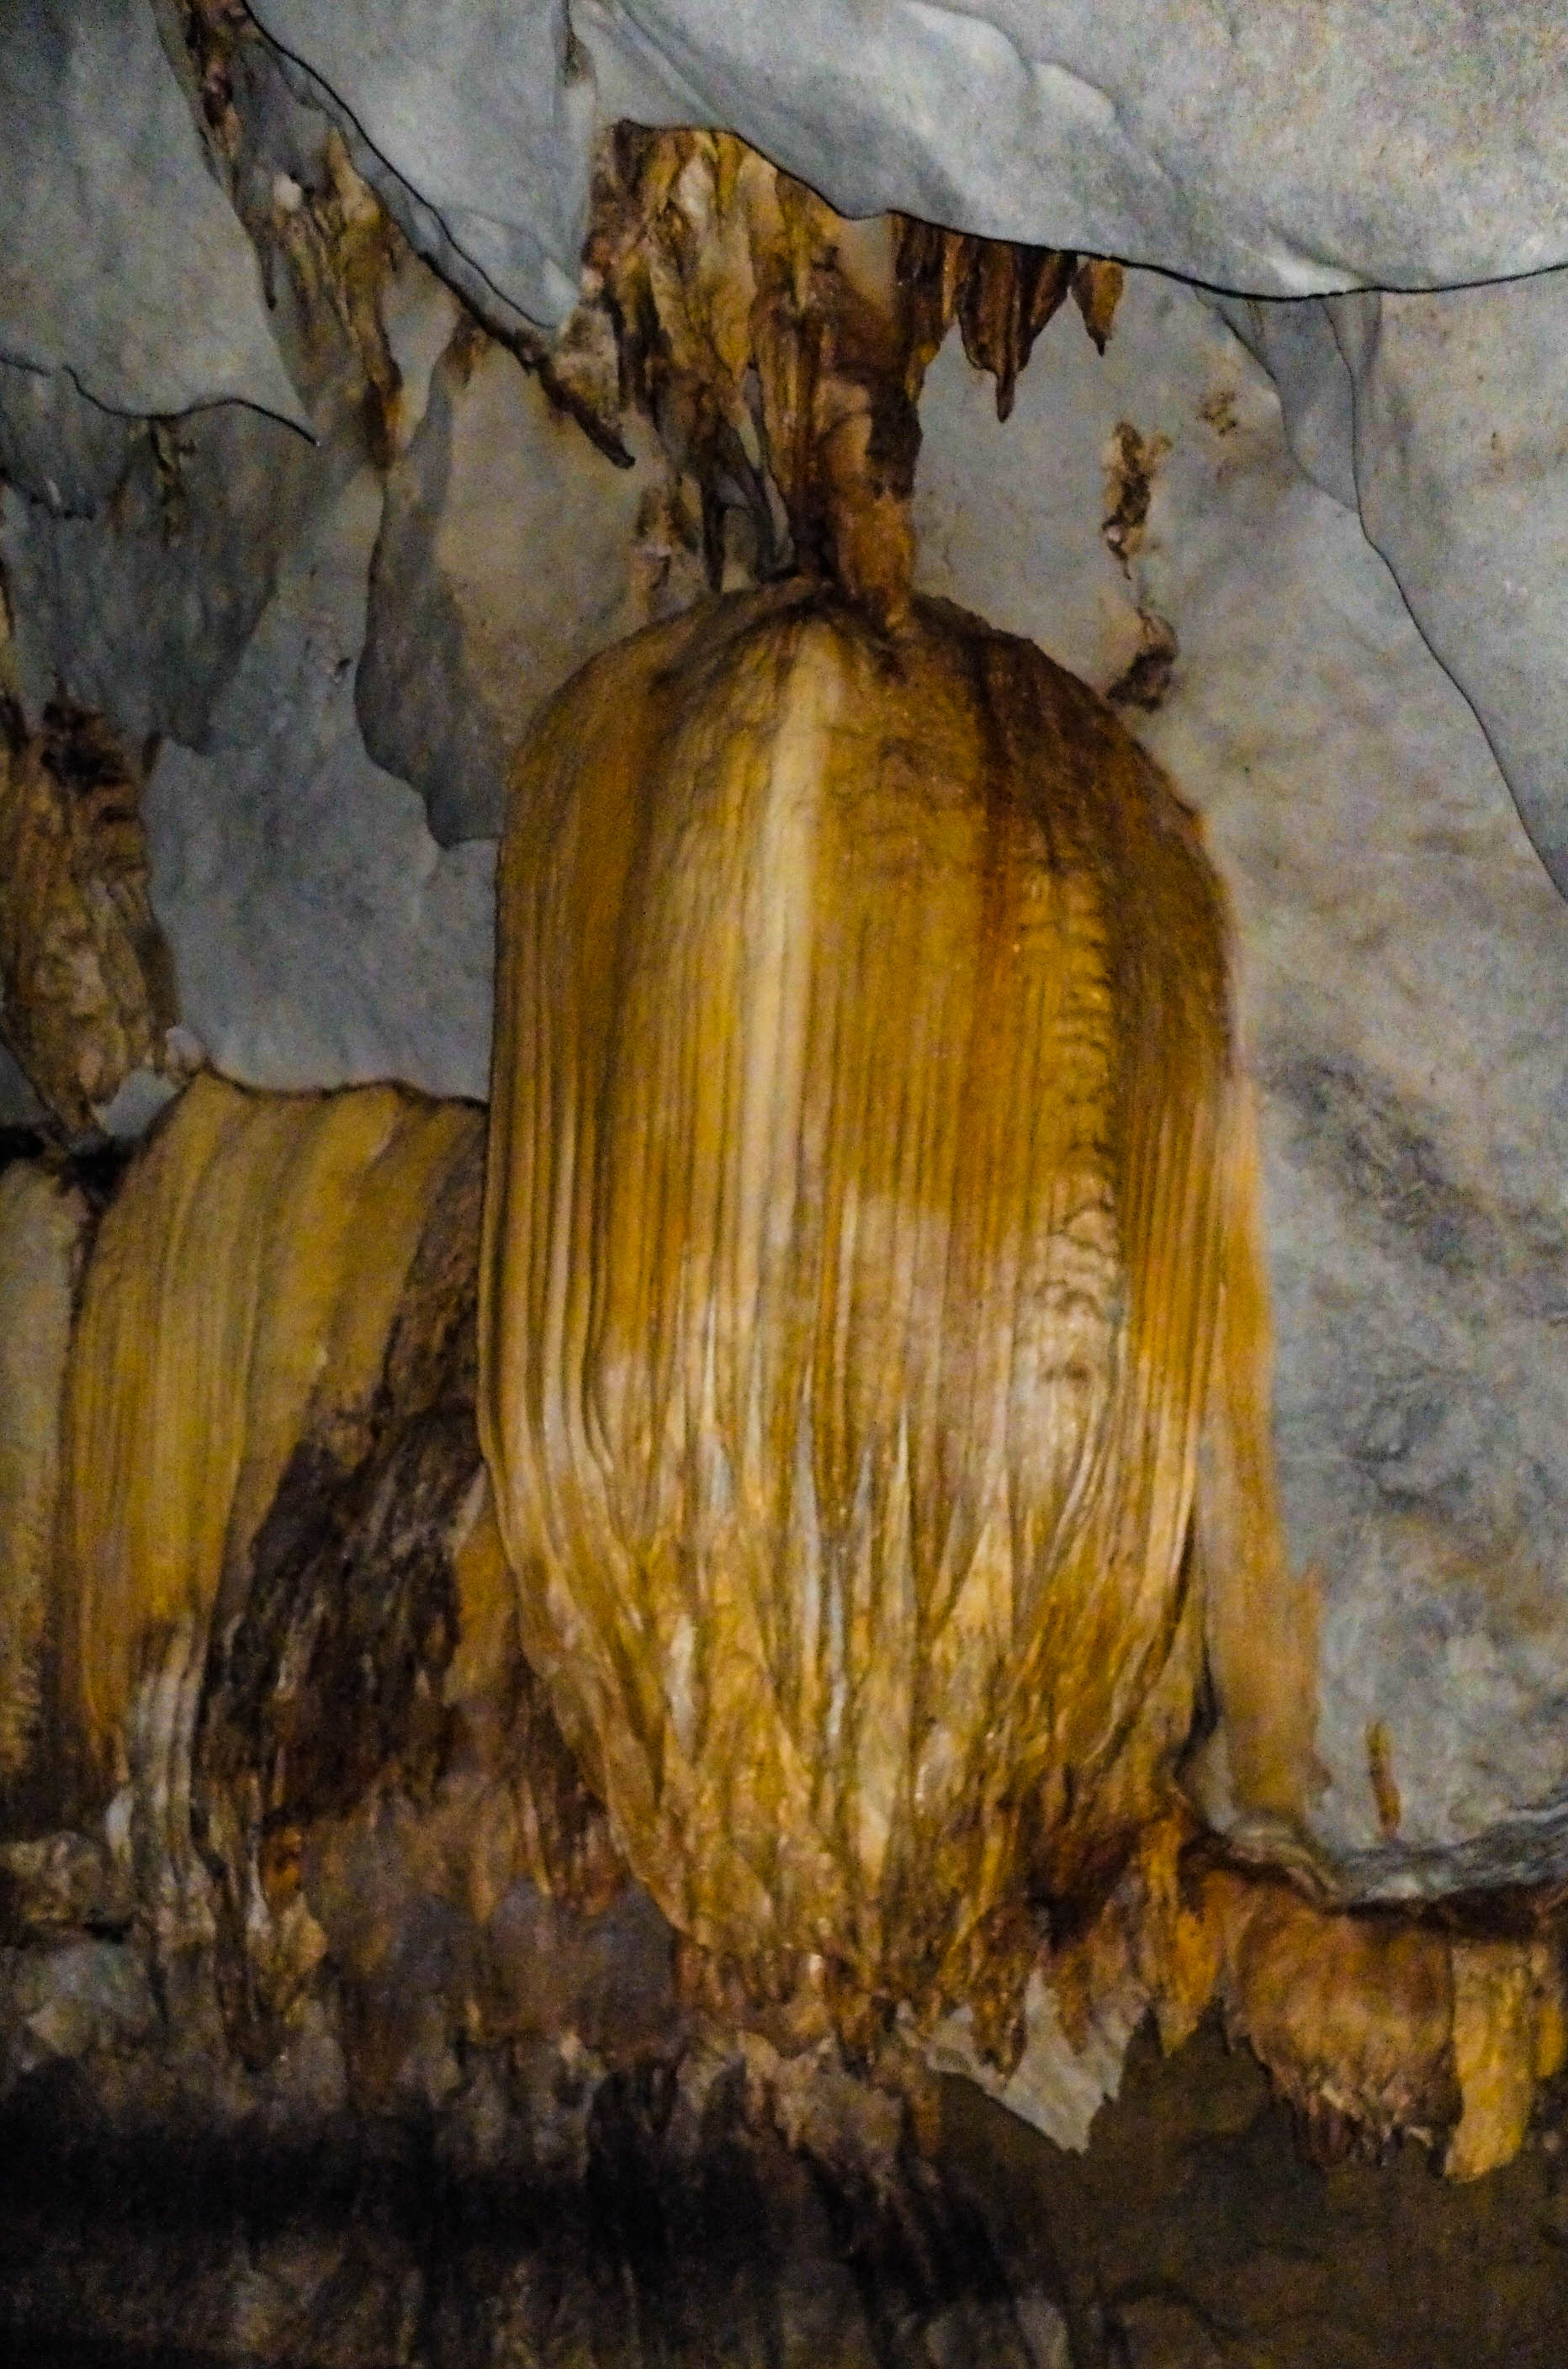 Stalactite hanging from the ceiling of an underground cave in Puerto Princesa Underground River, one of the most amazing places to visit in the Philippines